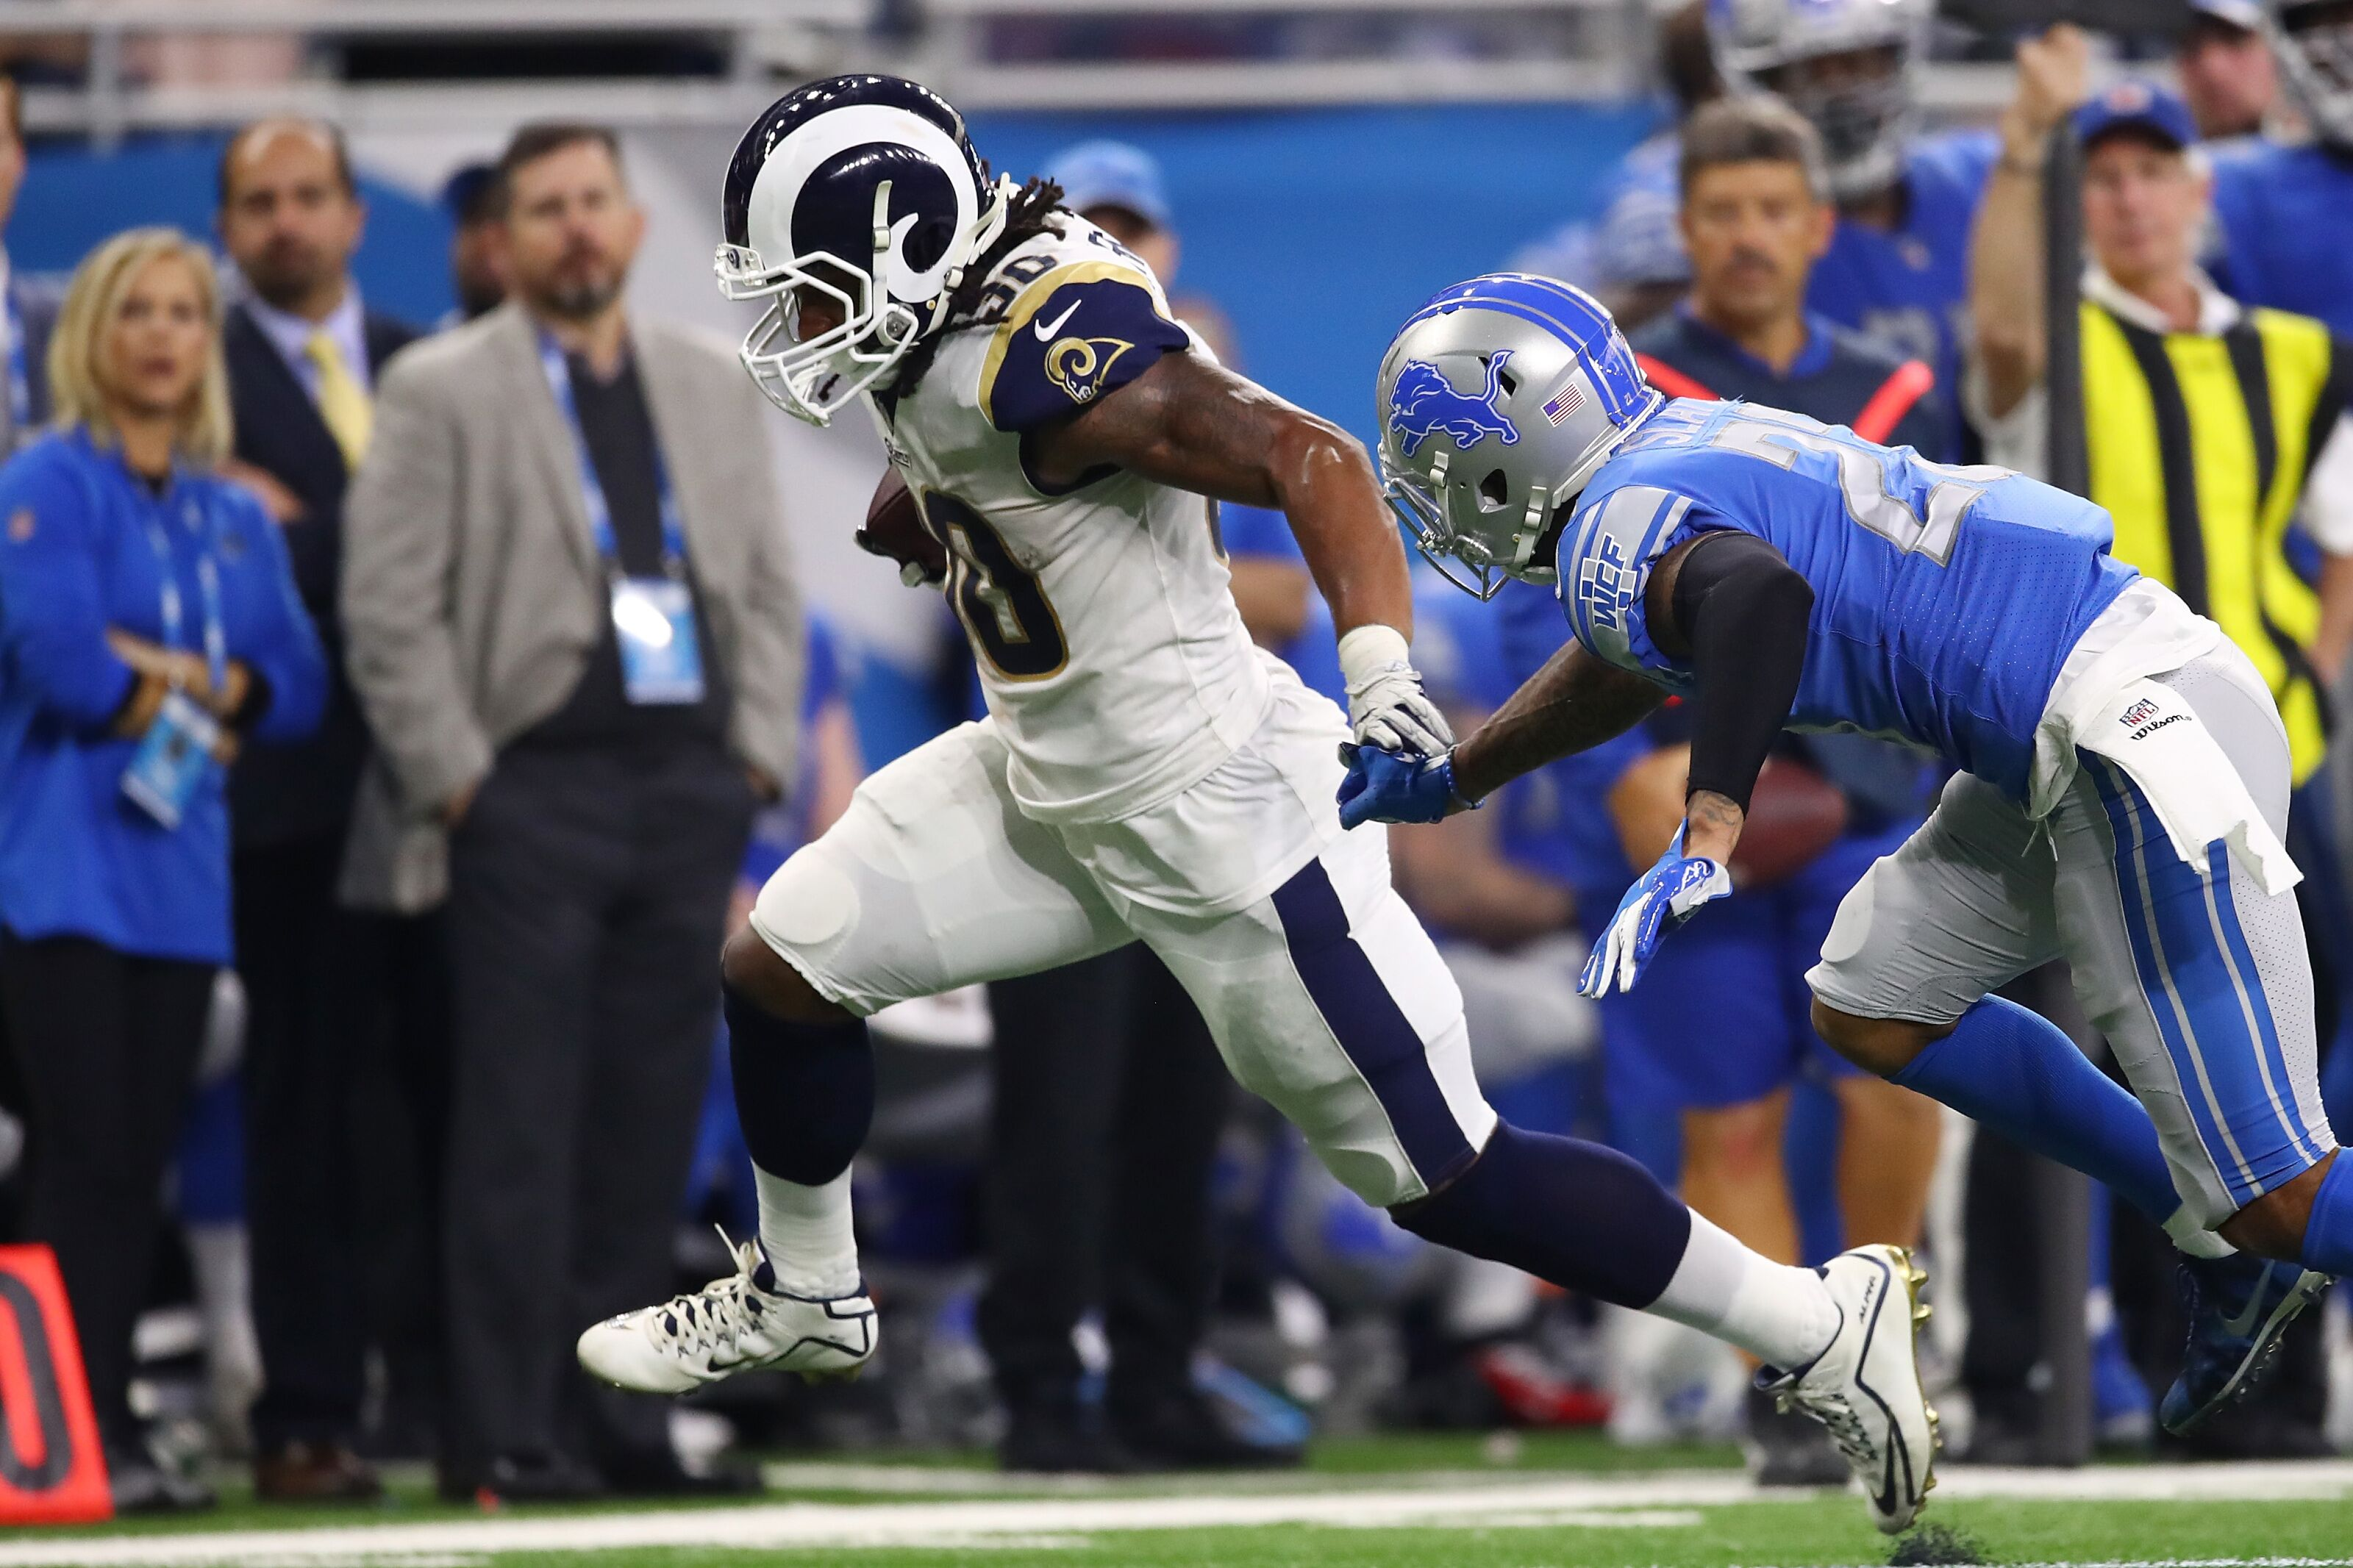 ee279508 Los Angeles Rams: Todd Gurley's knee concerns just won't go away